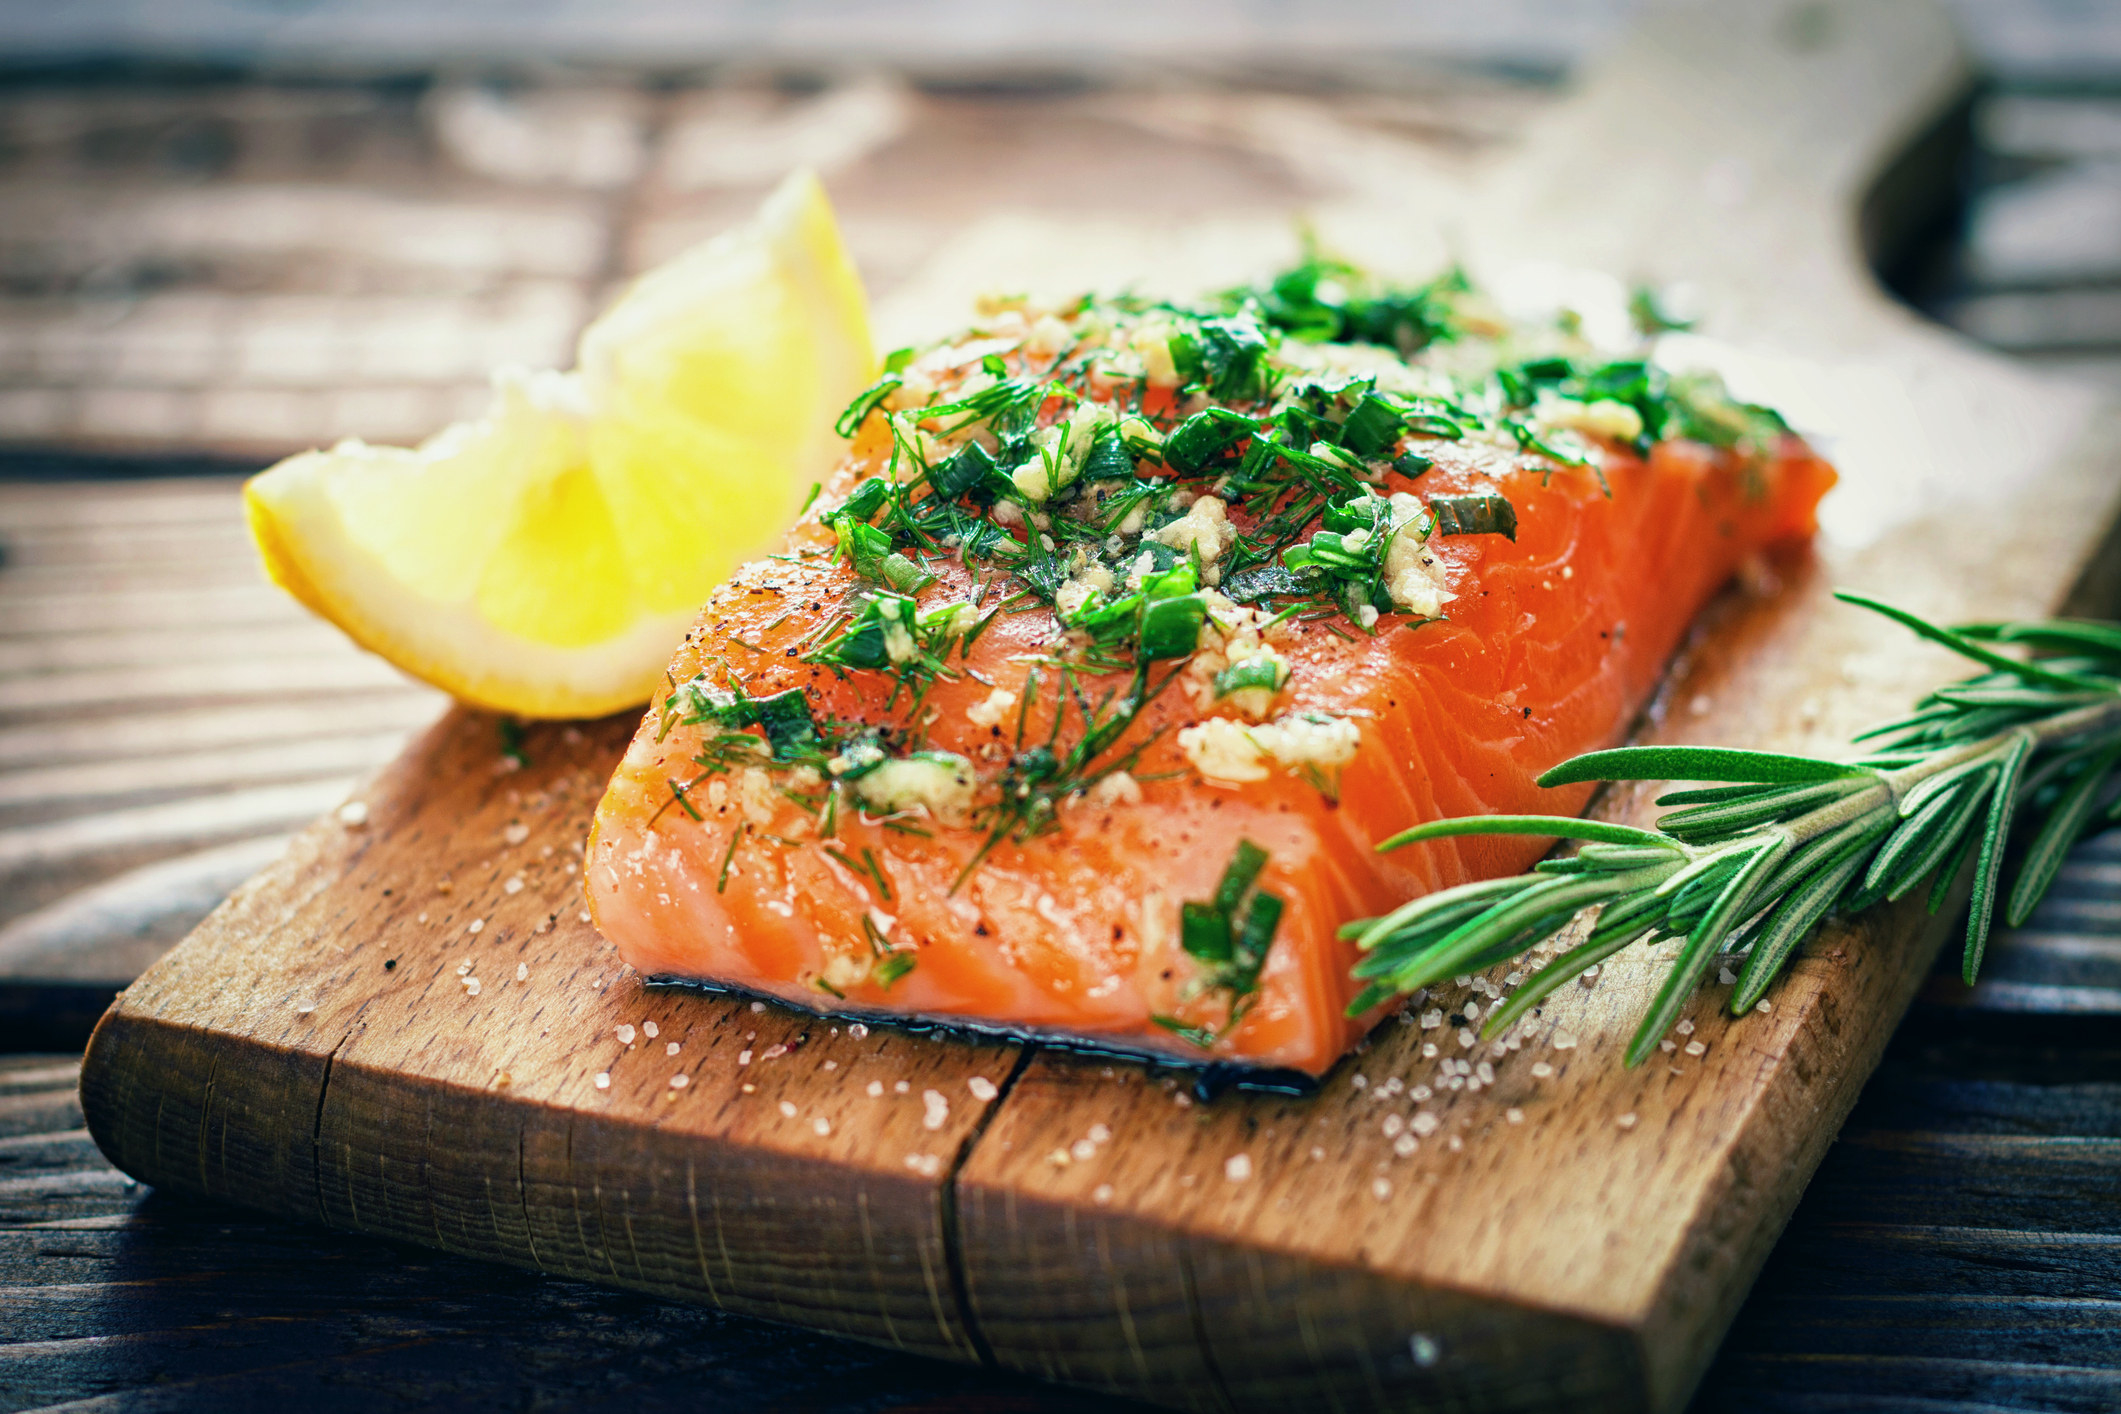 A piece of salmon topped with fresh herbs and spices.